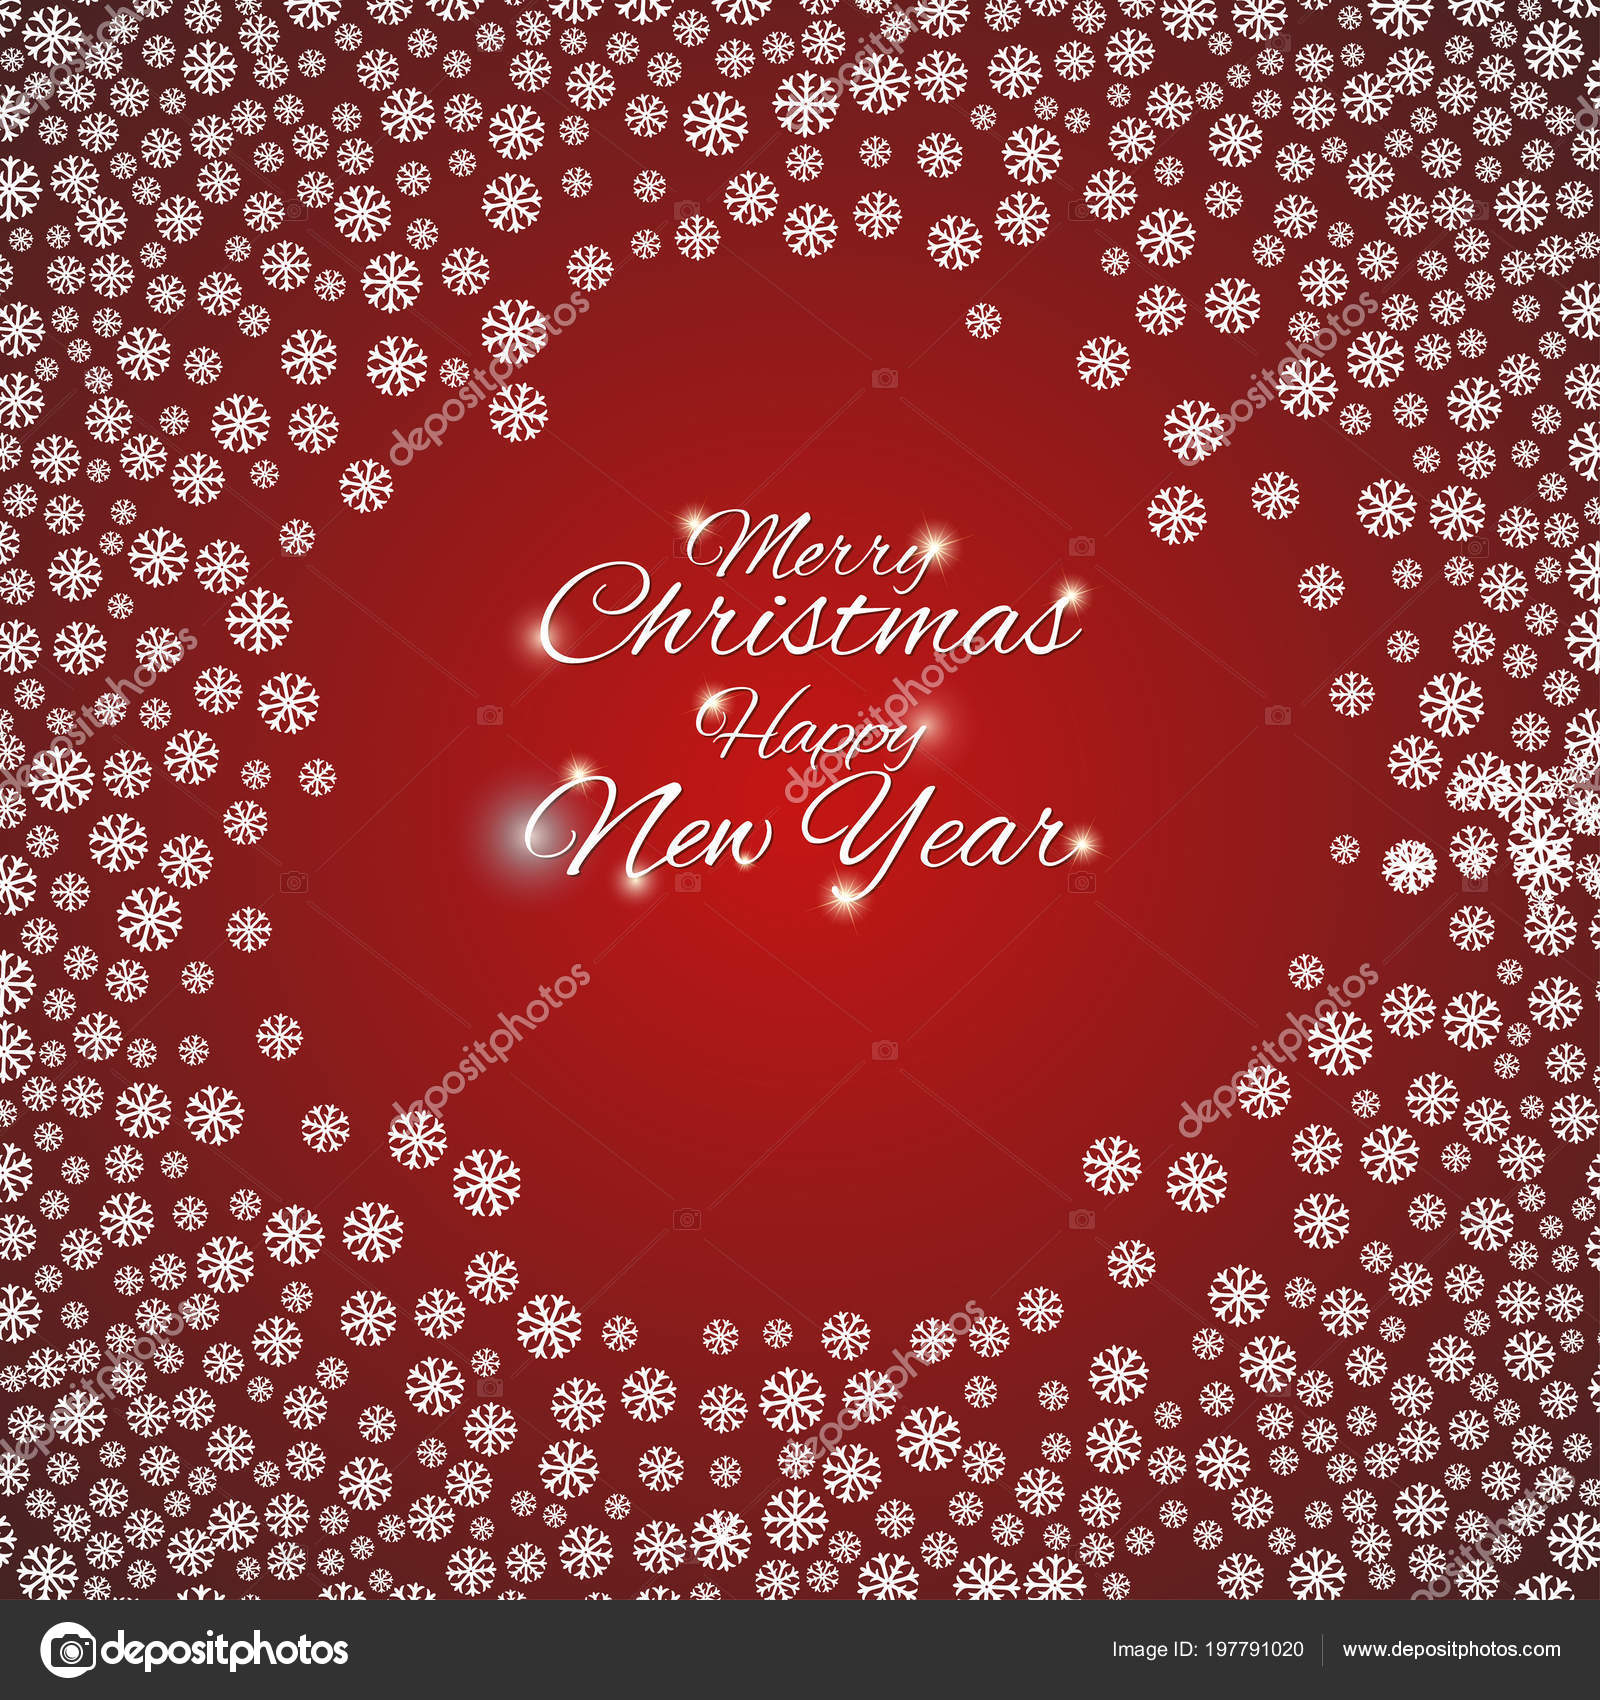 merry christmas happy new year beautiful background snowflakes greeting cards stock vector